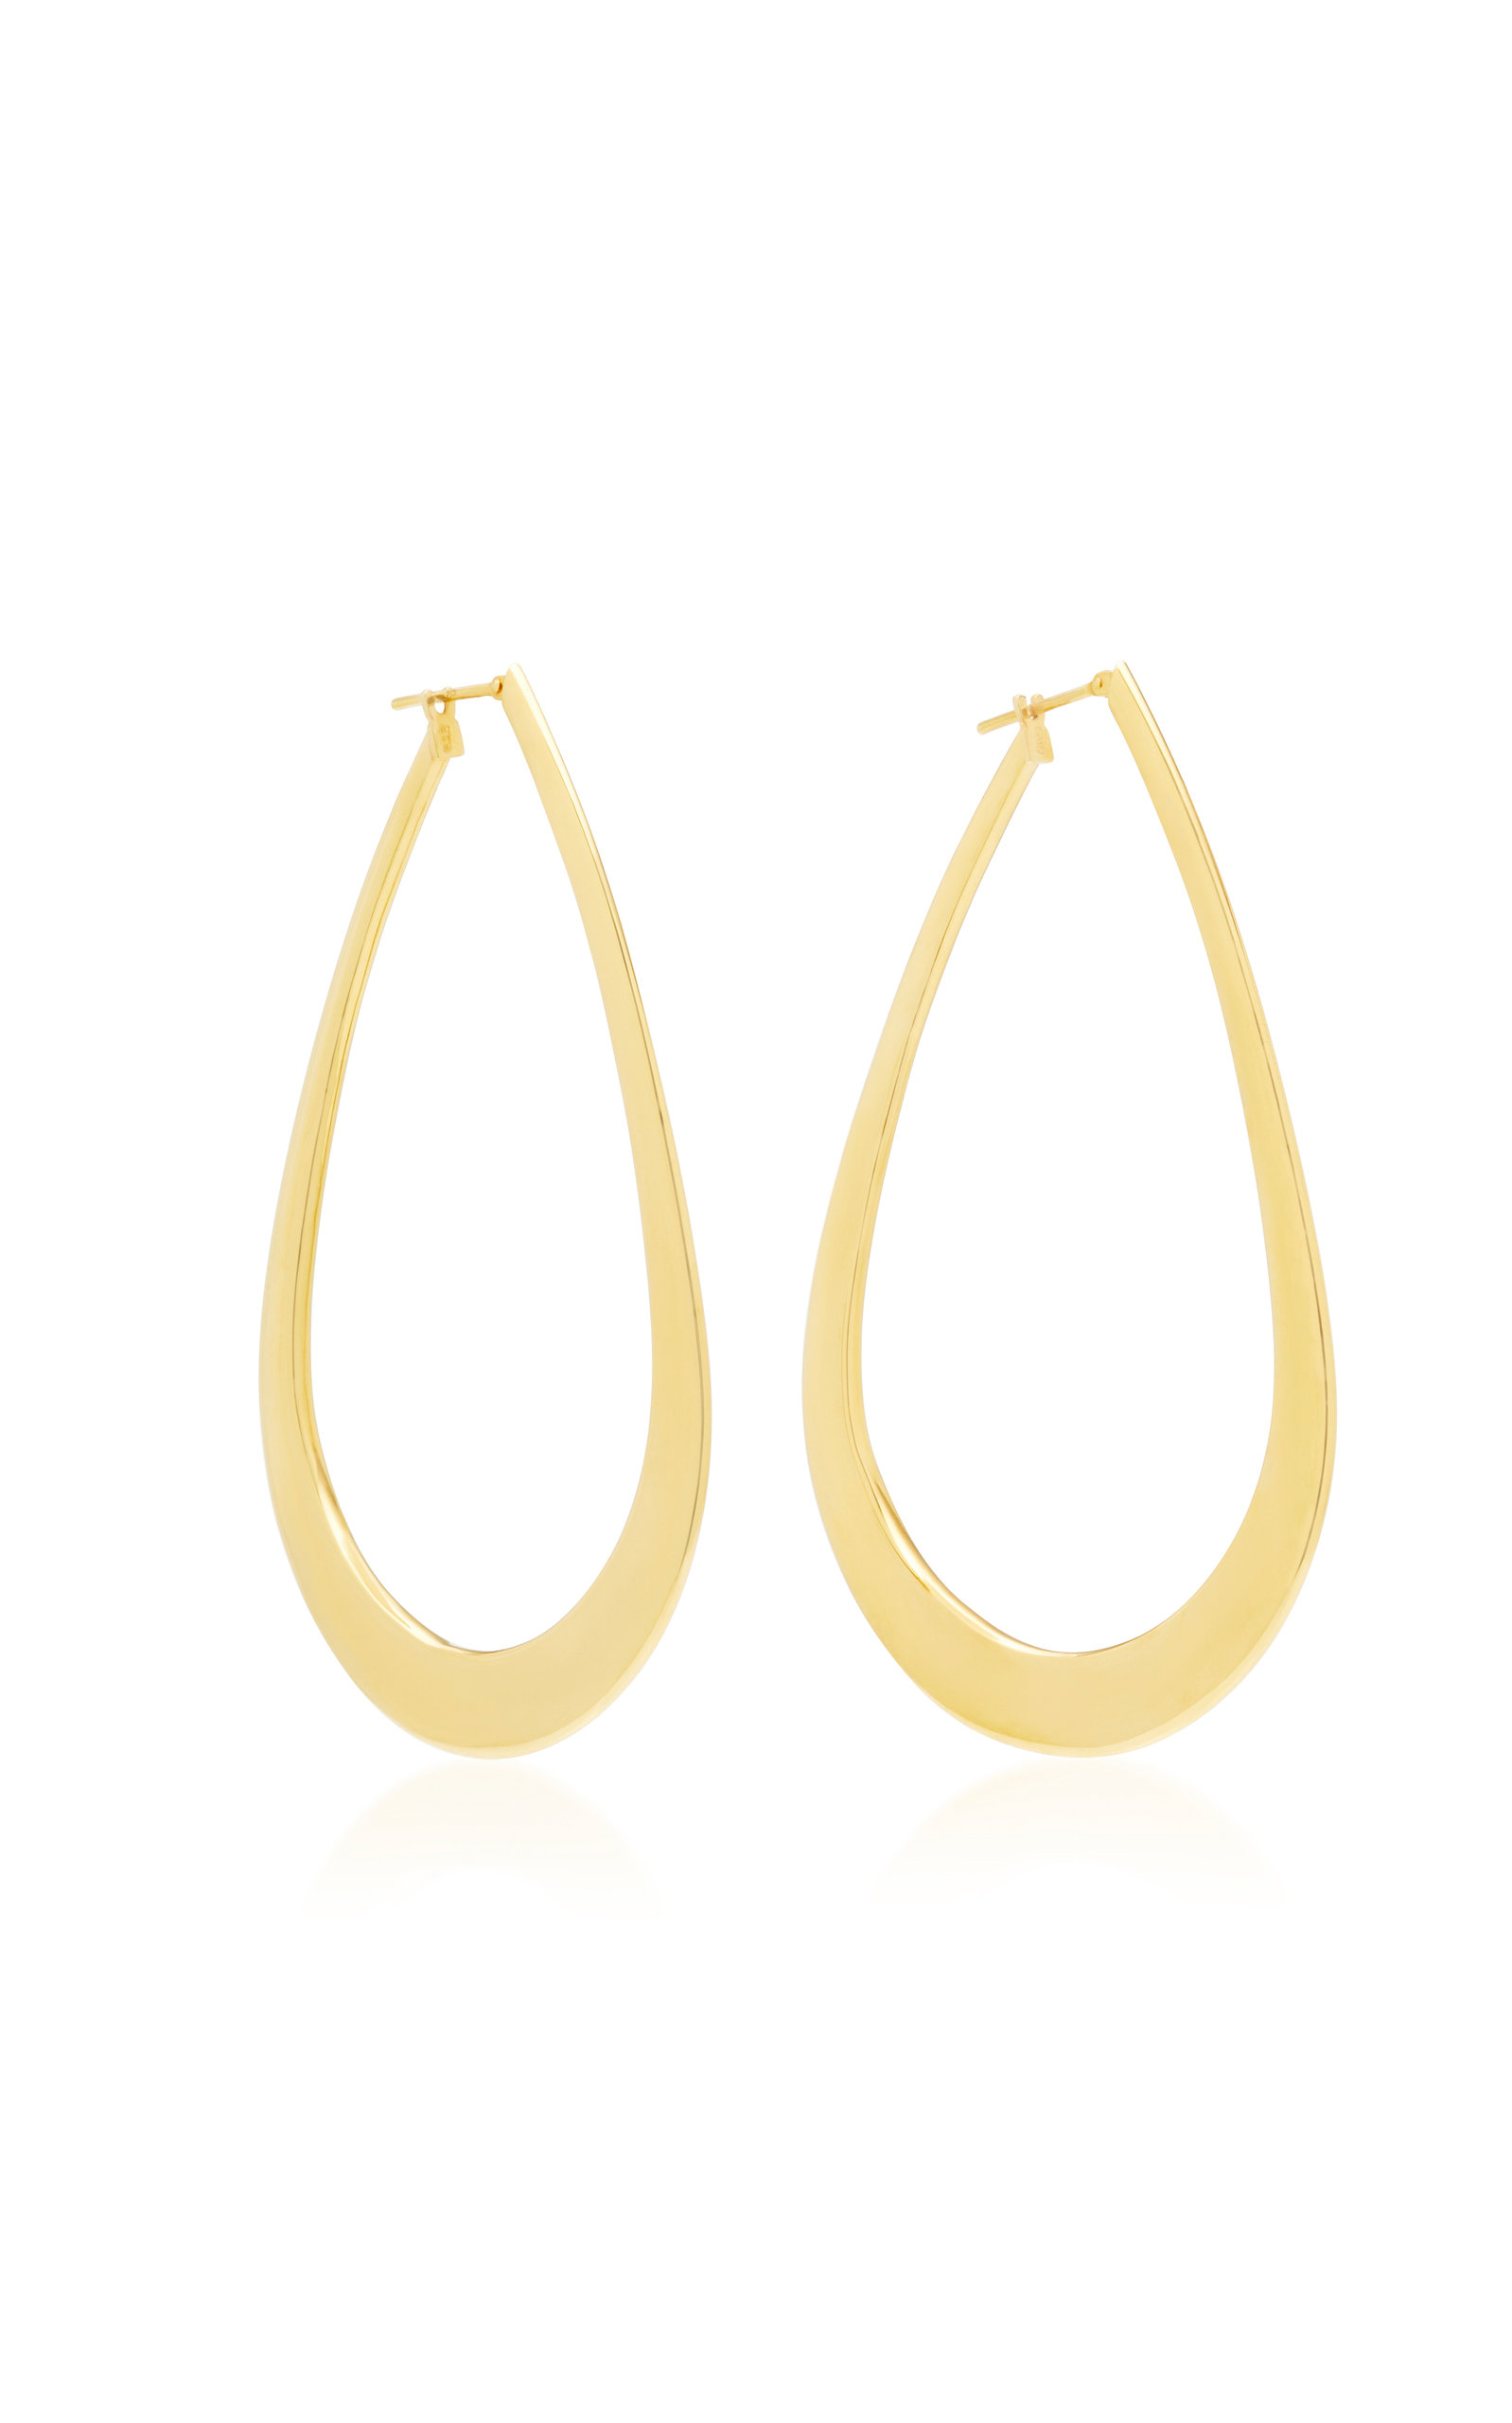 SIDNEY GARBER 18K Gold Hoop Earrings